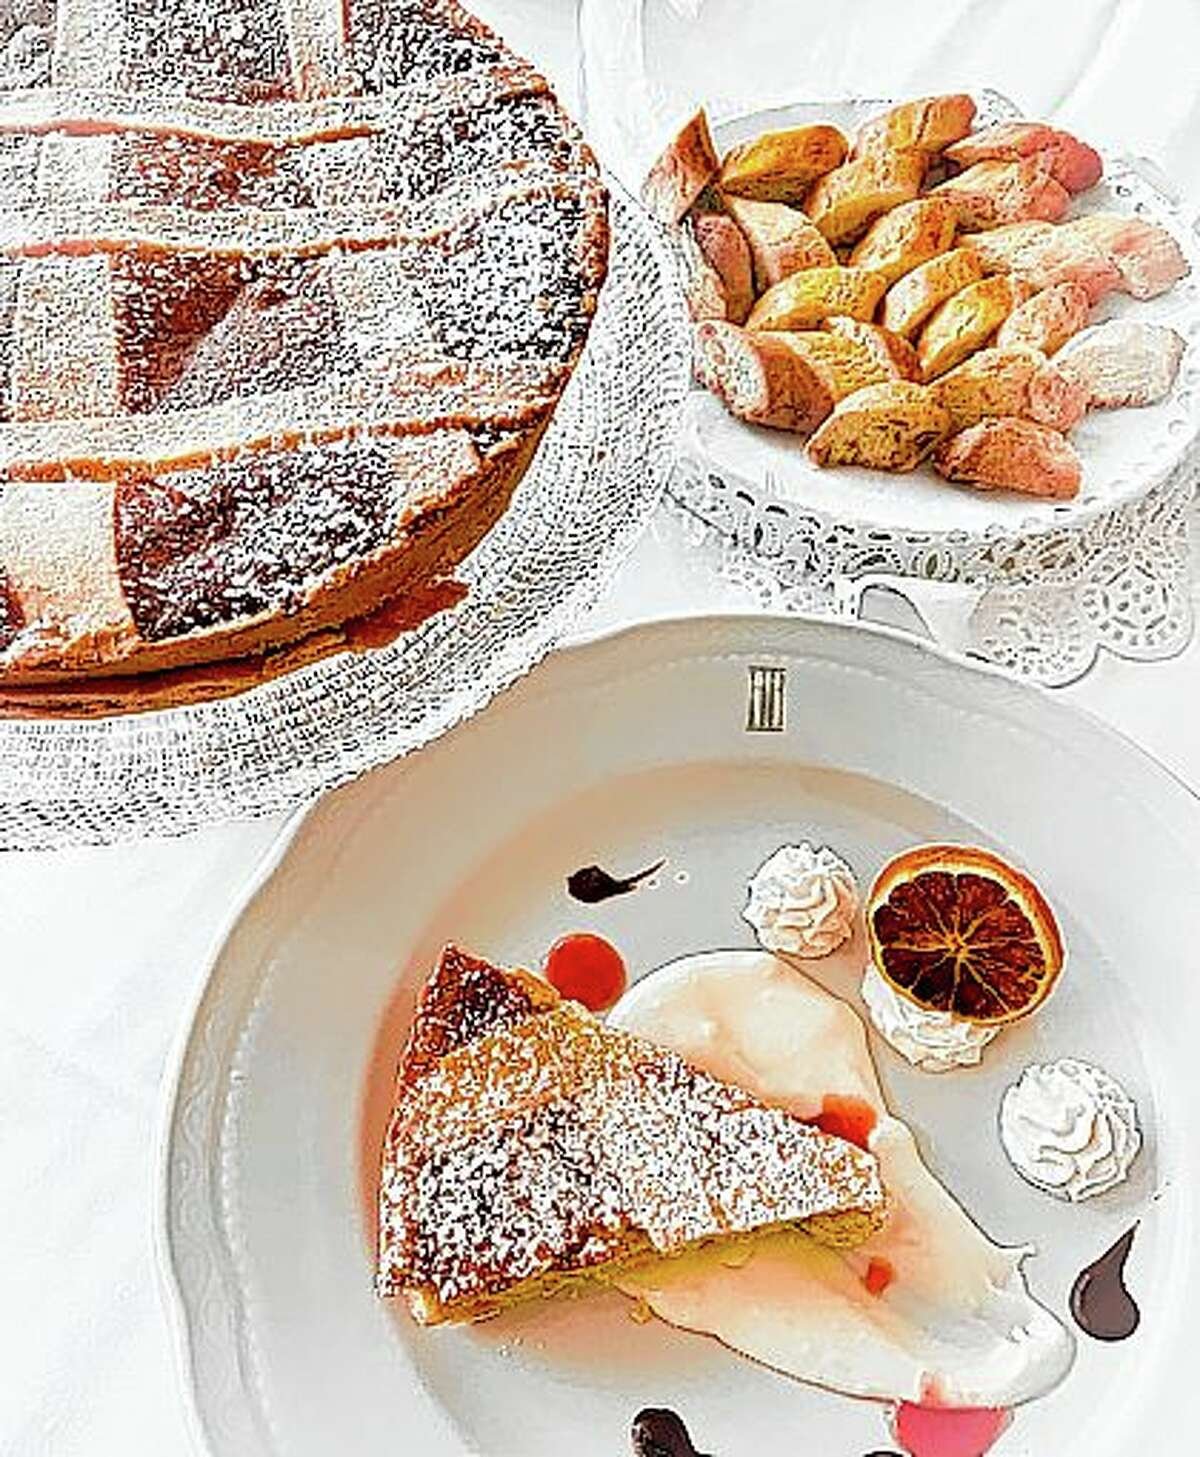 Neapolitan Pastiera is a traditional Italian Easter cake with a texture somewhere in the middle of where cheesecake, custard and souffle meet.